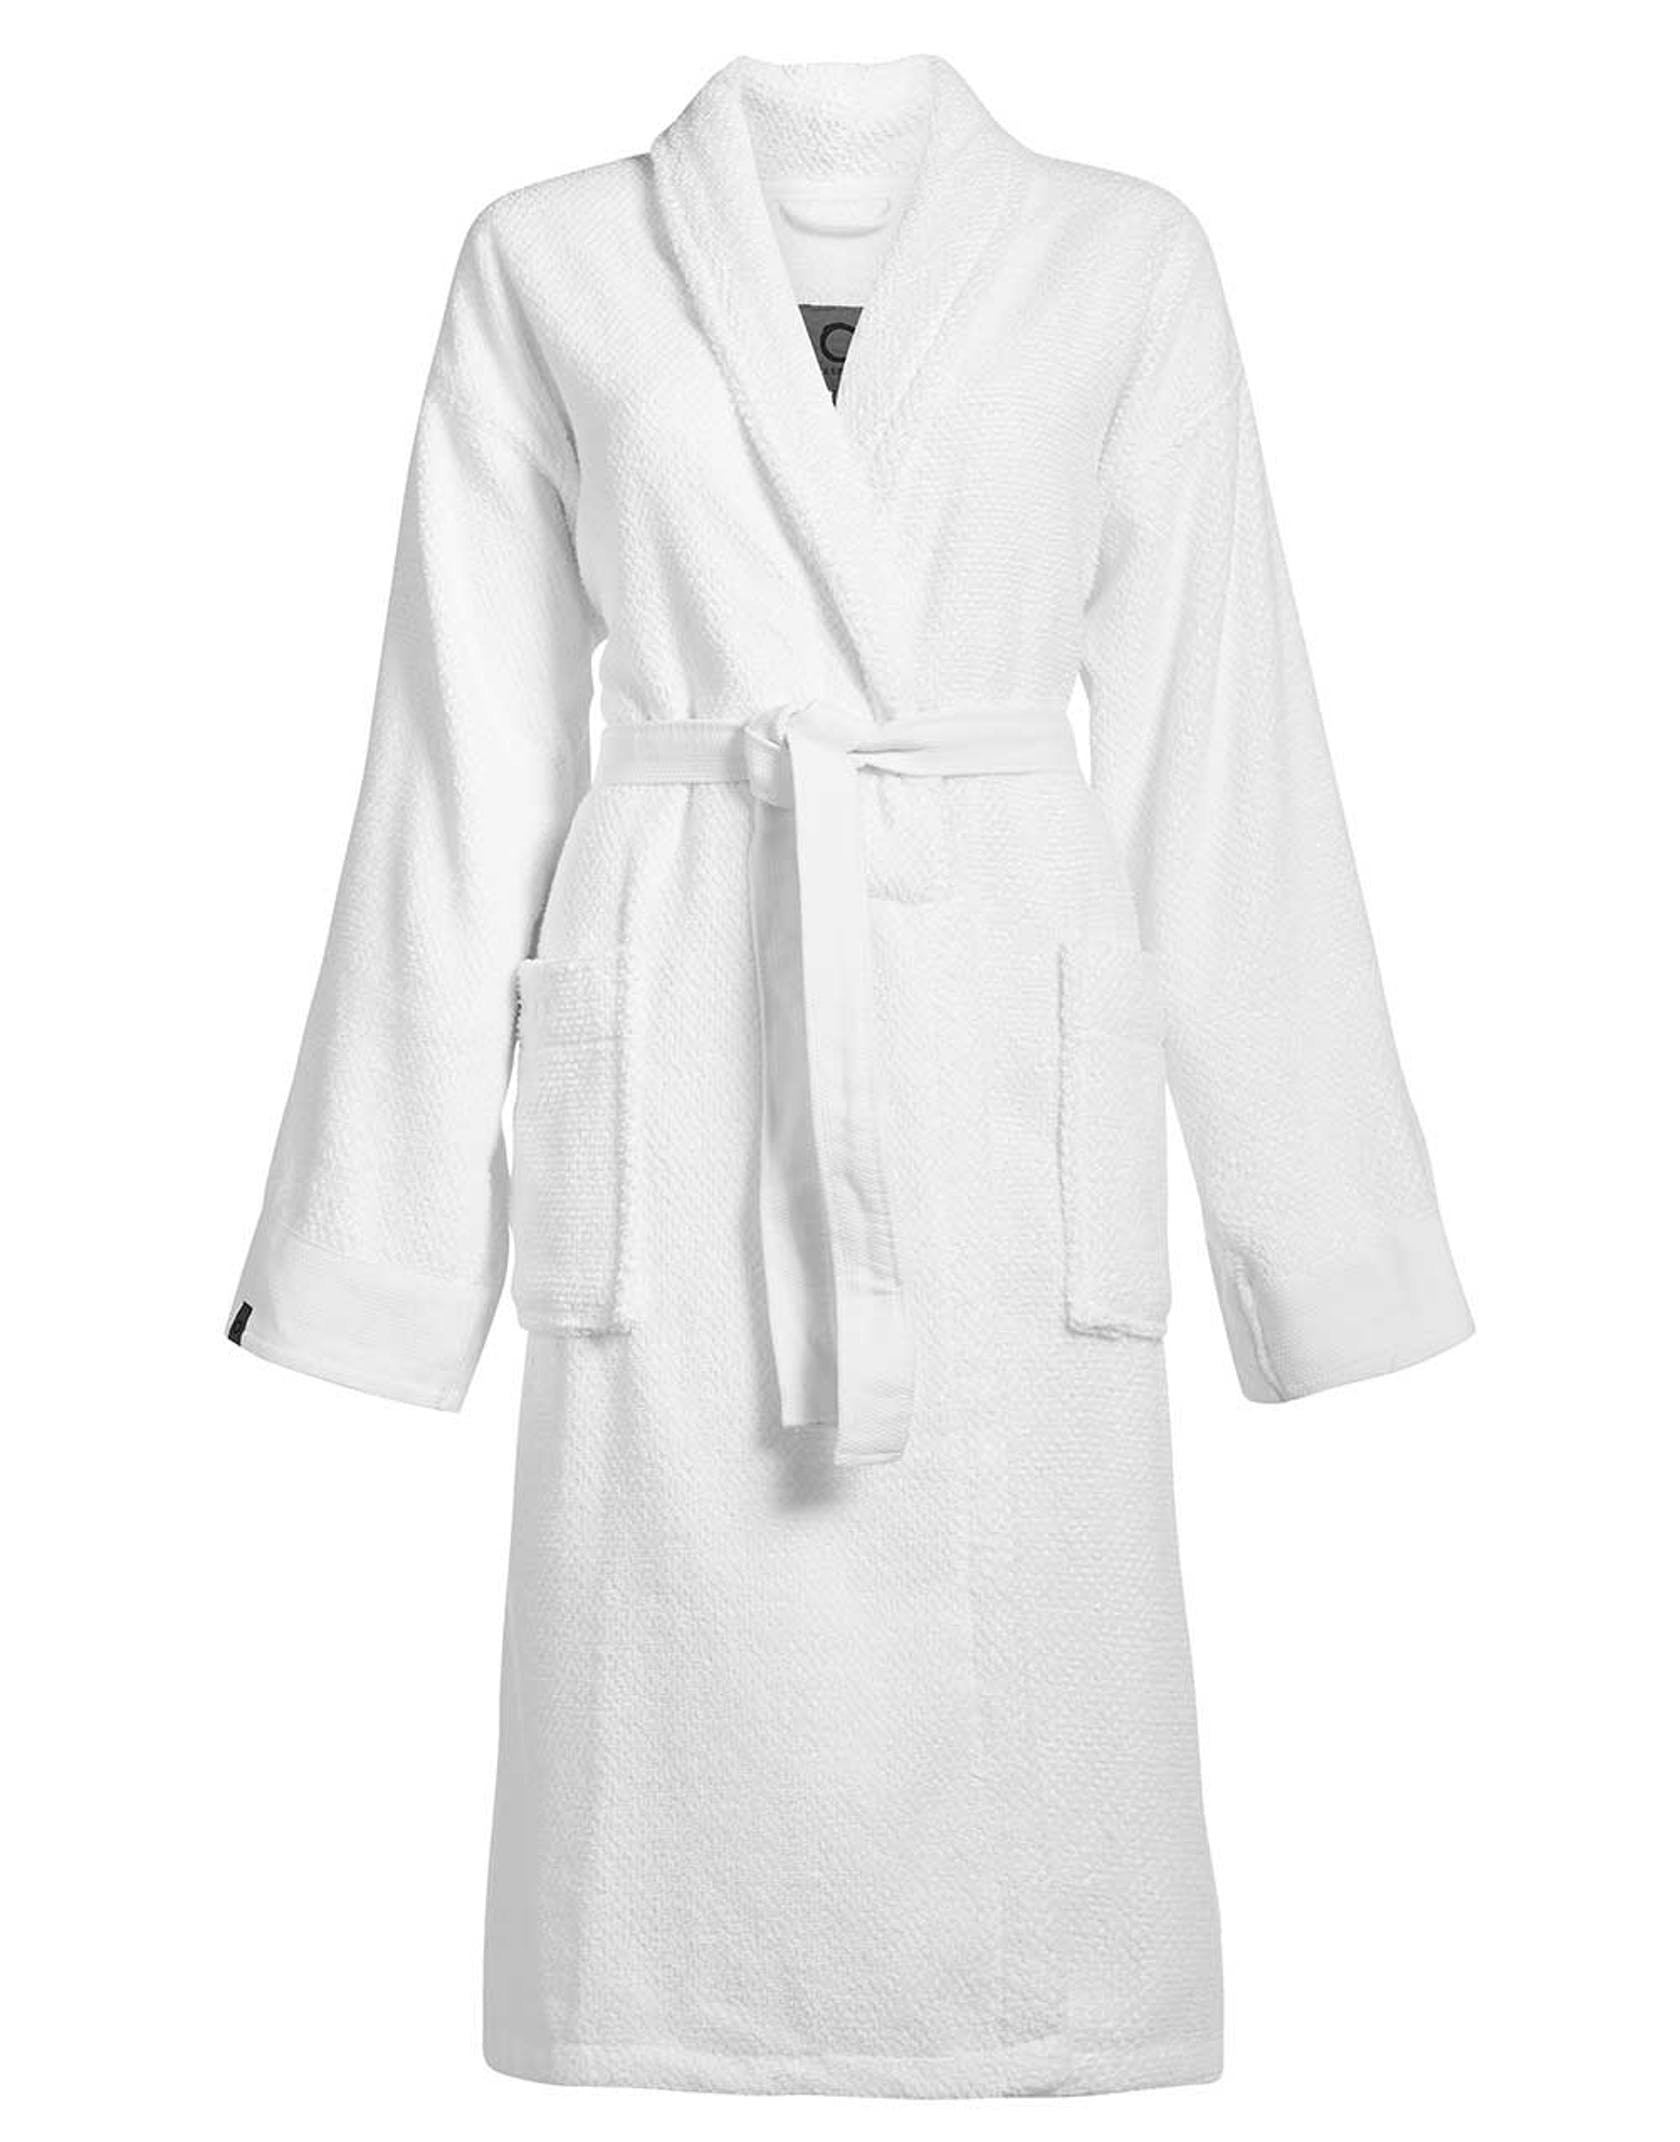 ESSENZA Connect Organic Uni Bathrobe White